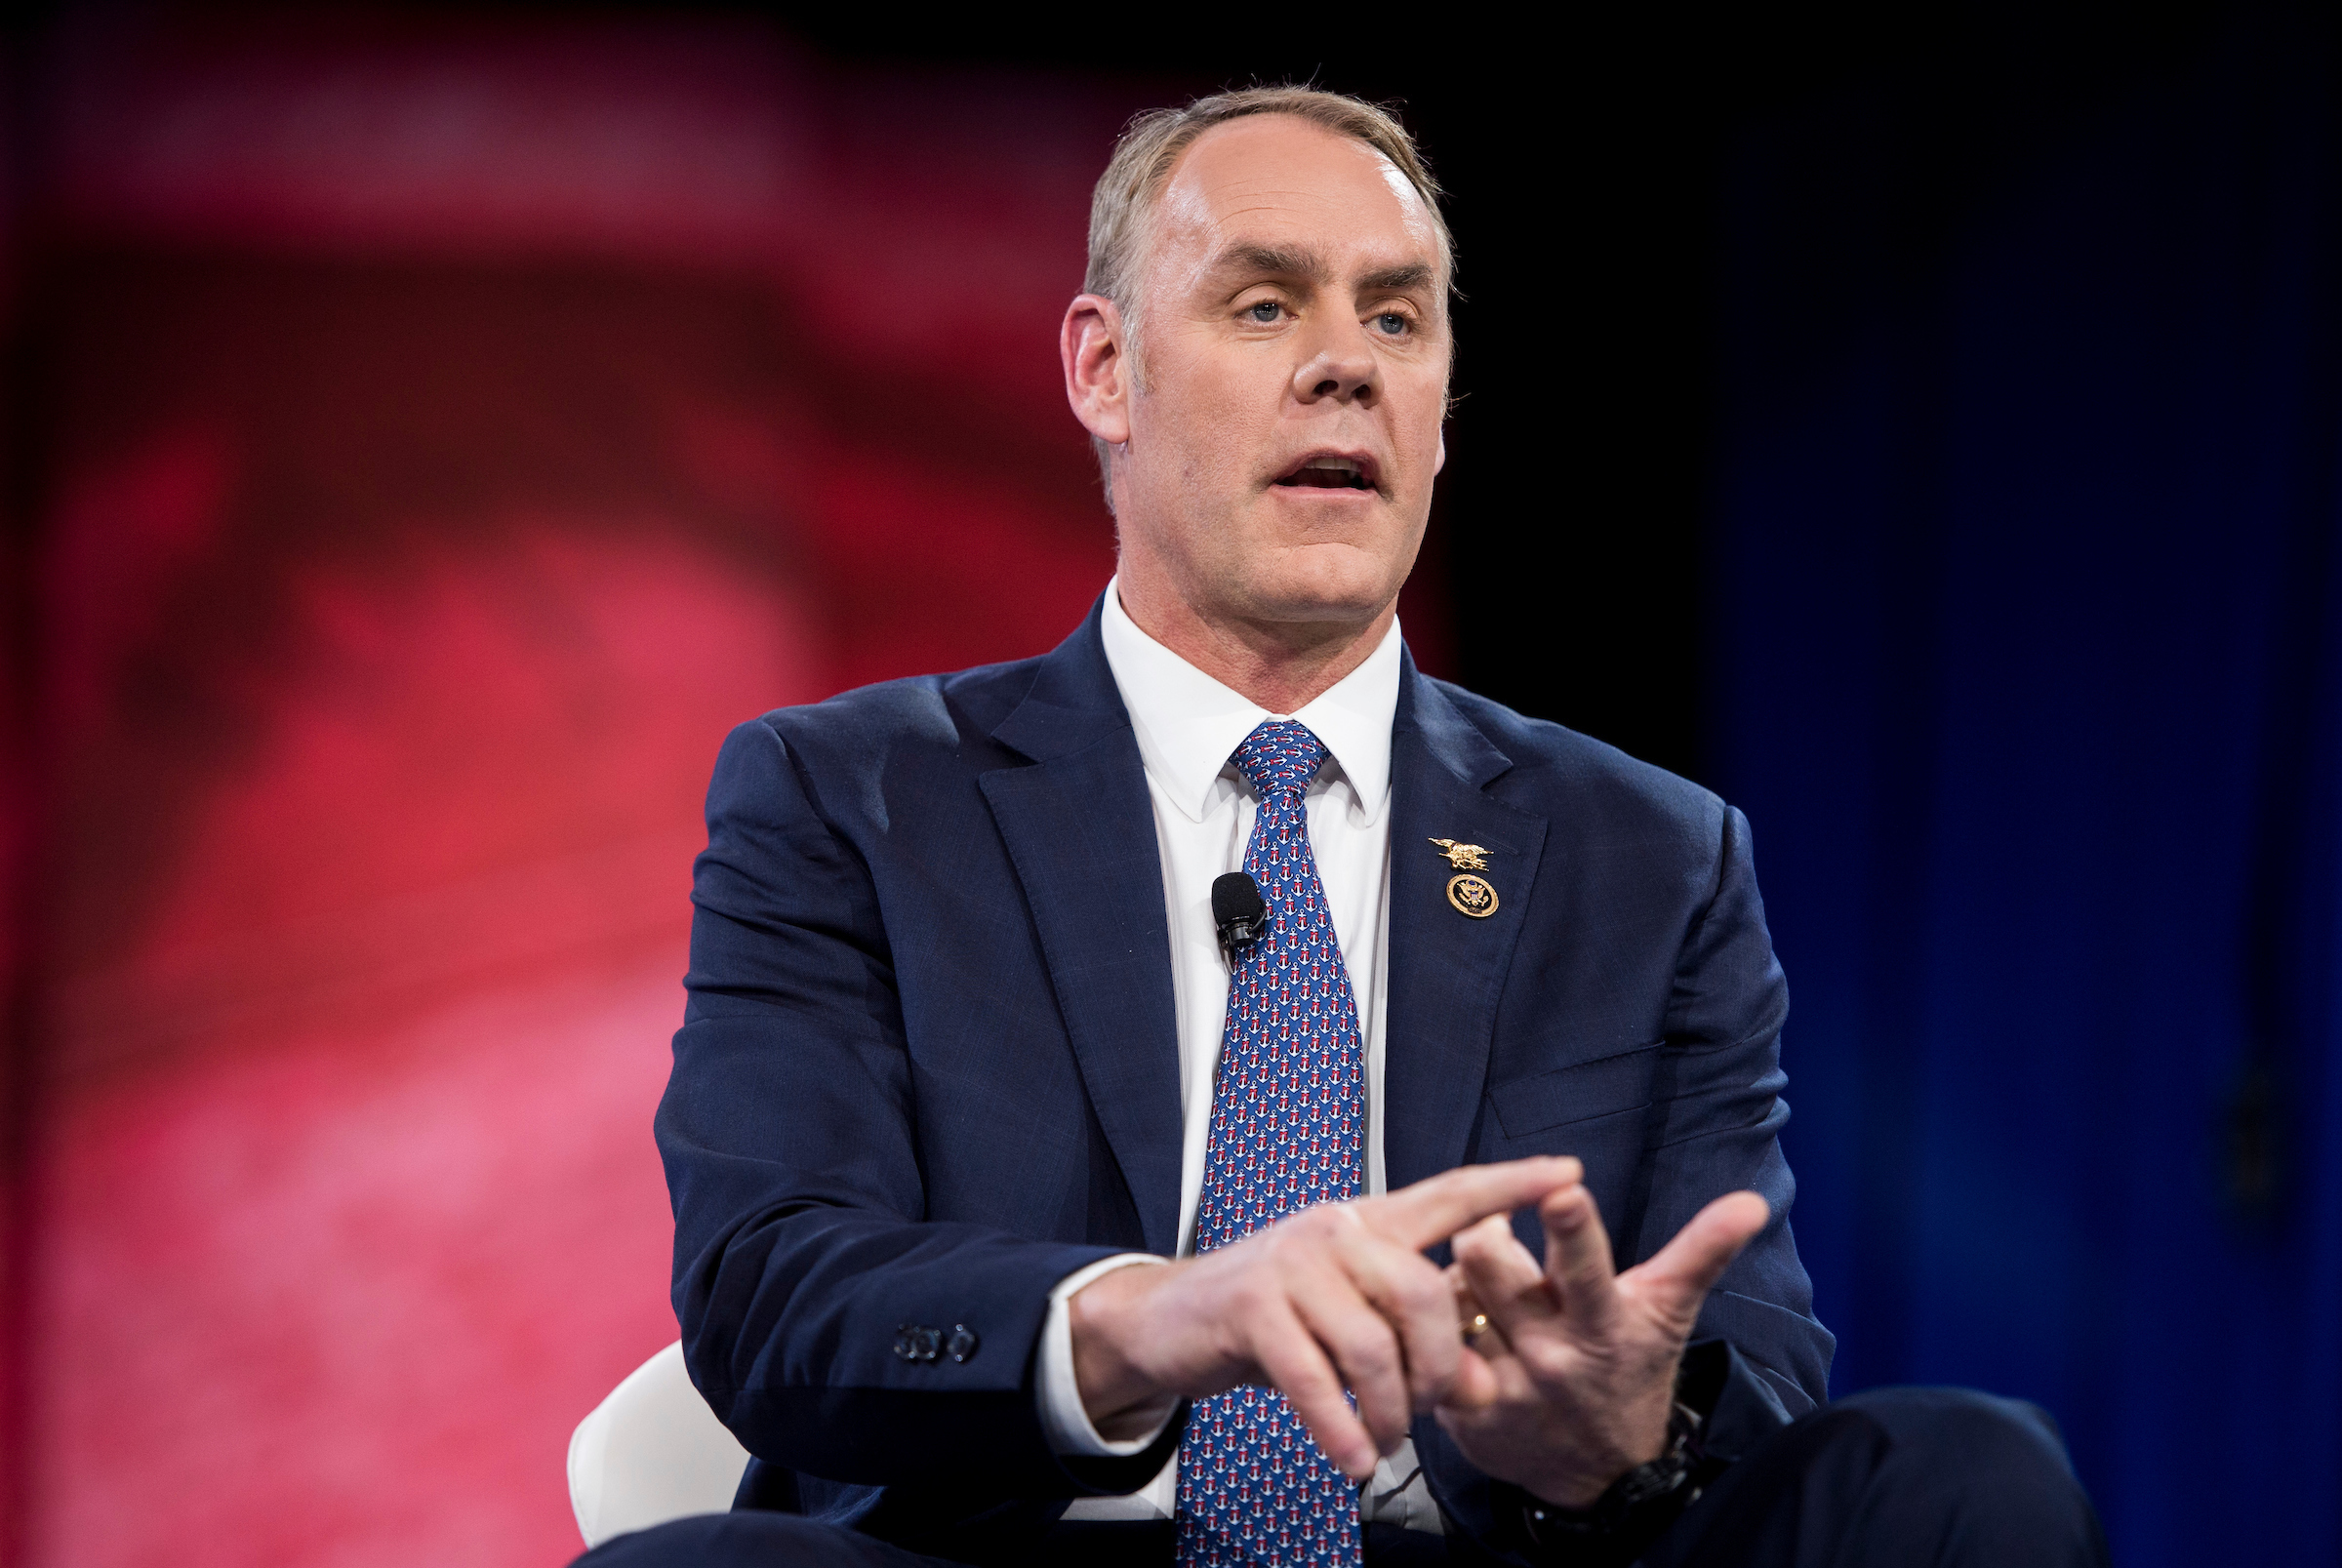 Rep. Ryan Zinke, R-Mont., is expected to resign from his seat after he is confirmed as secretary for the Department of the Interior, creating a fourth House GOP vacancy from cabinet confirmations. (Photo By Bill Clark/CQ Roll Call file photo)